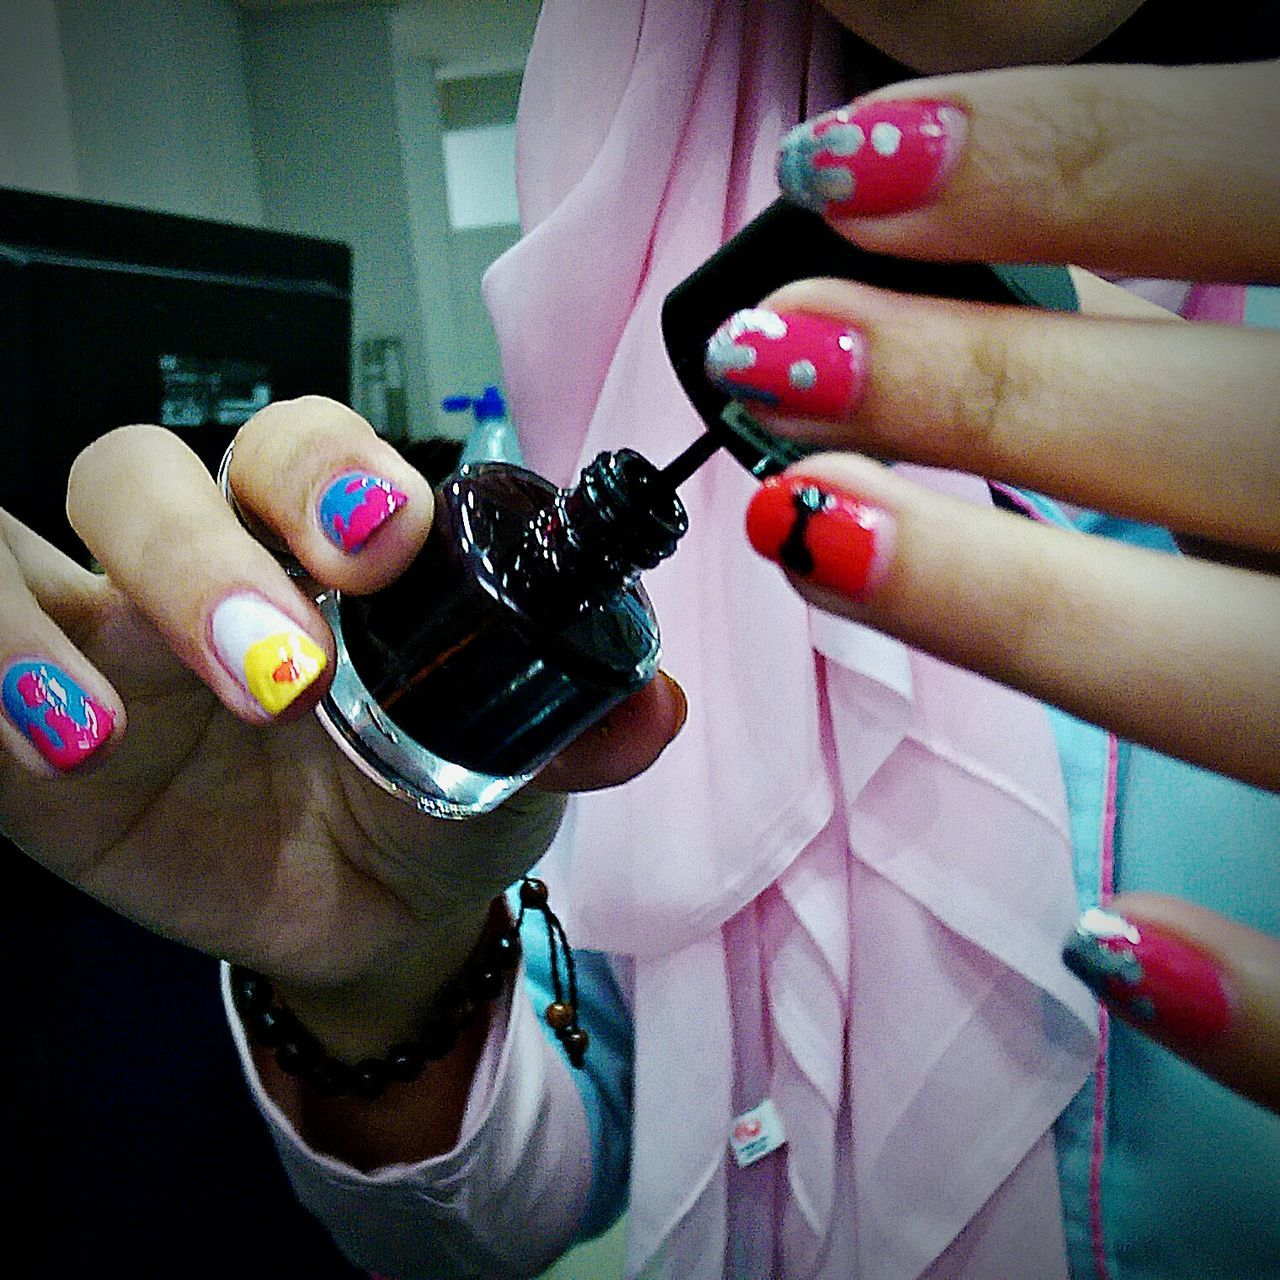 human hand, human body part, human finger, nail polish, real people, nail art, fingernail, women, one person, fashion, ring, holding, lifestyles, manicure, pink color, indoors, beauty, close-up, perfume, painting fingernails, day, adult, people, adults only